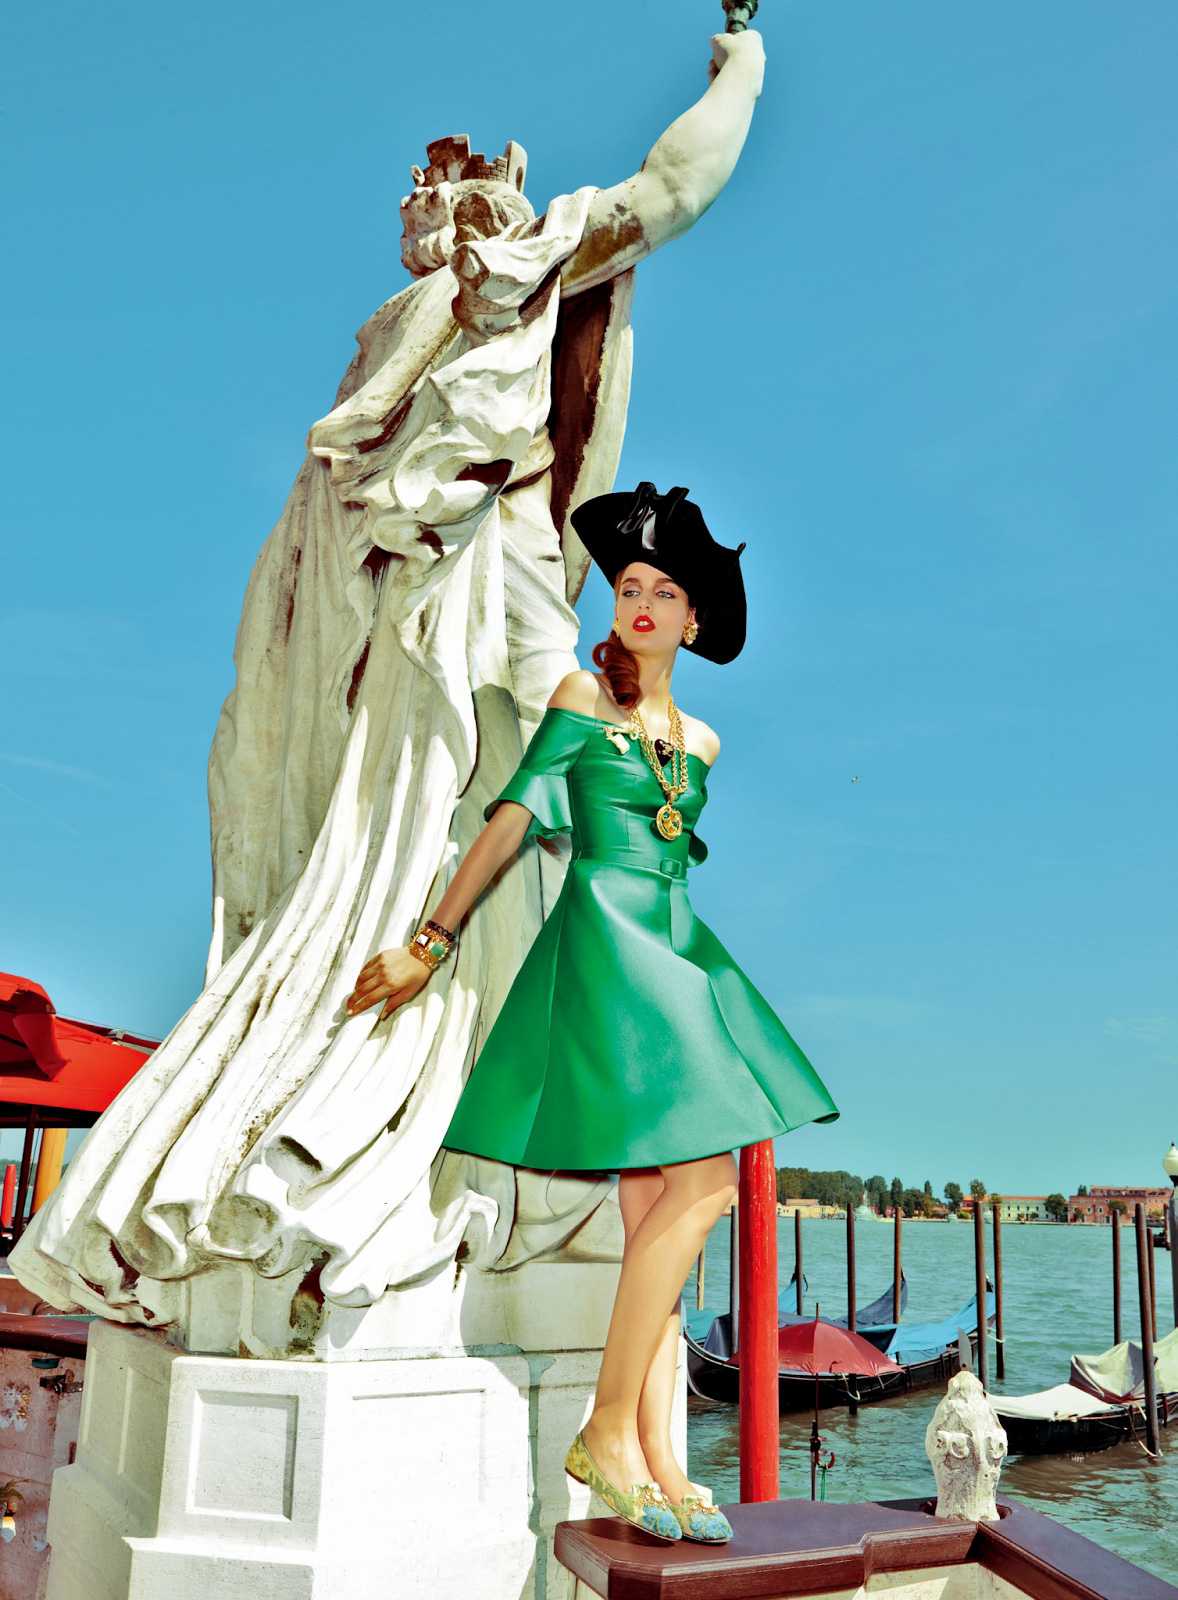 Giovanna-Battaglia-6-My-Fascination-with-Venice-Vogue-Japan-Pierpaolo-Ferrari.jpeg